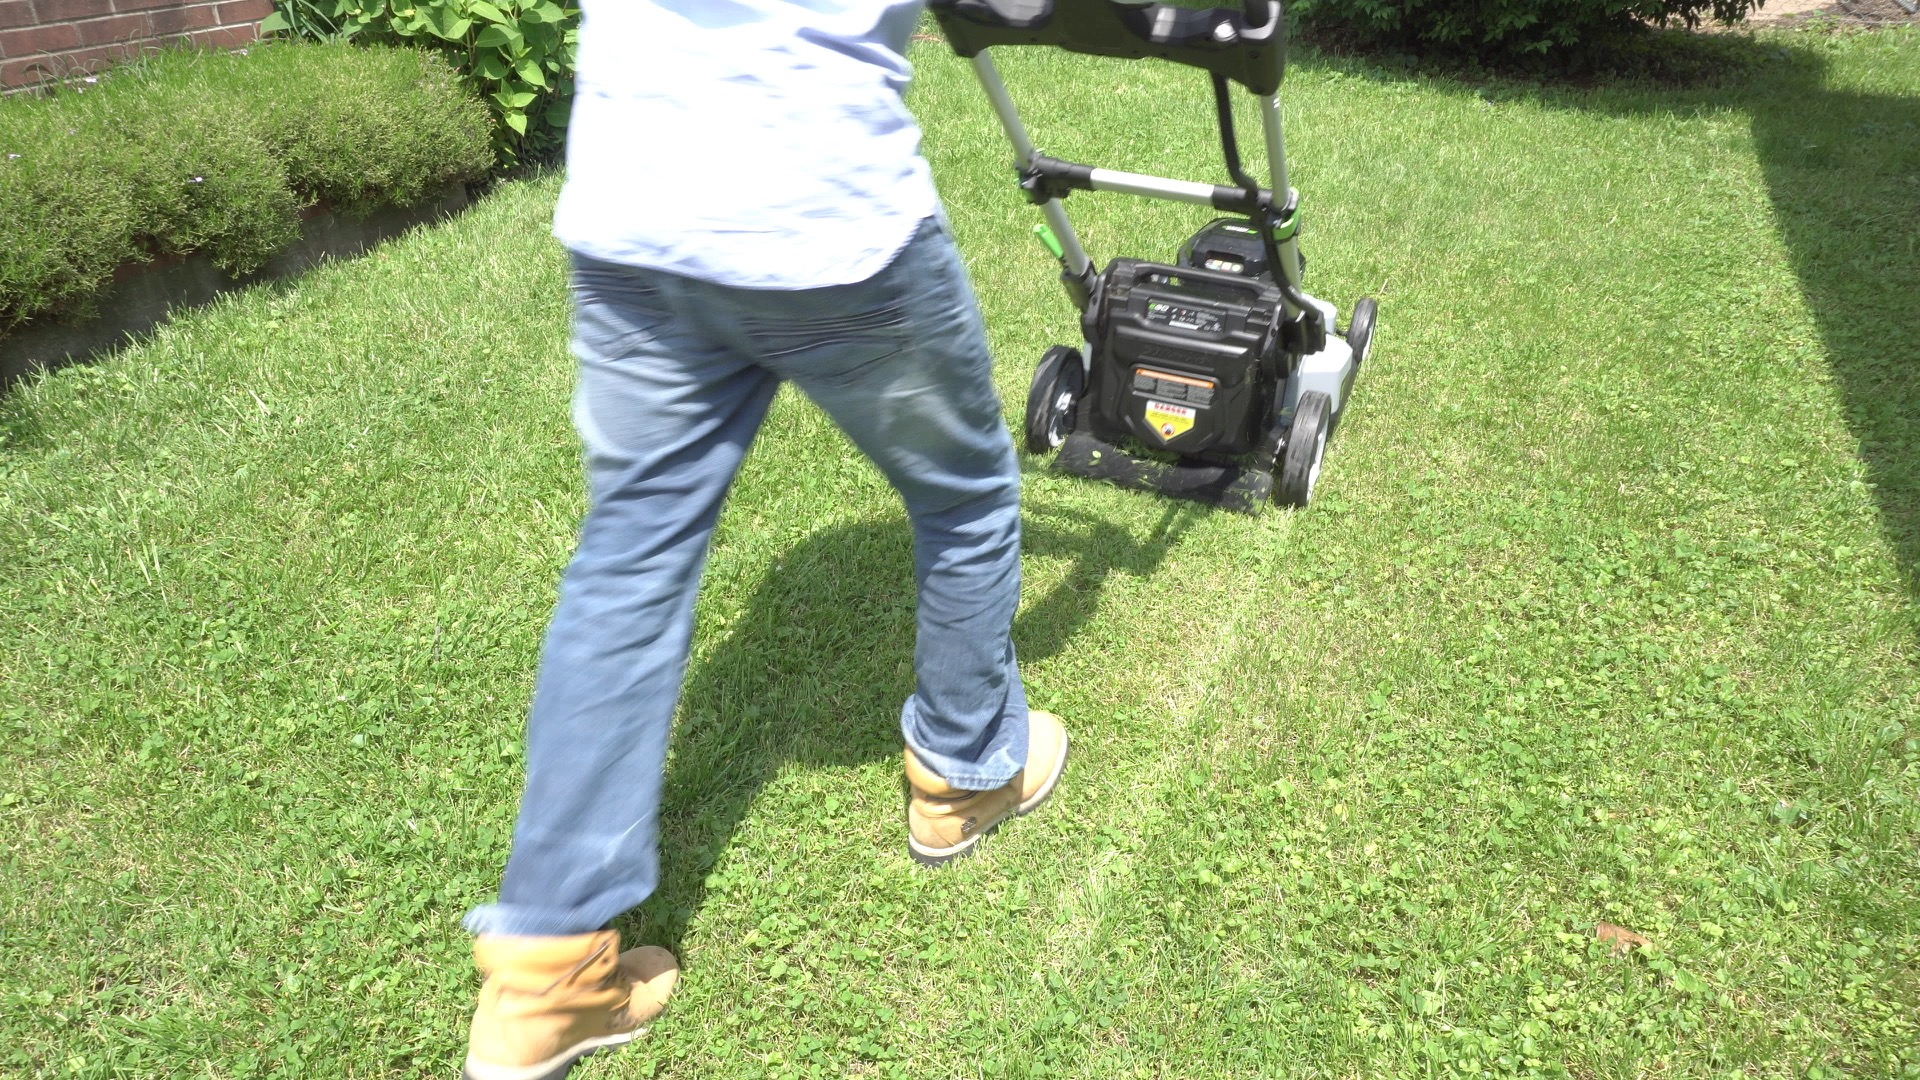 EGO Power Mower 12